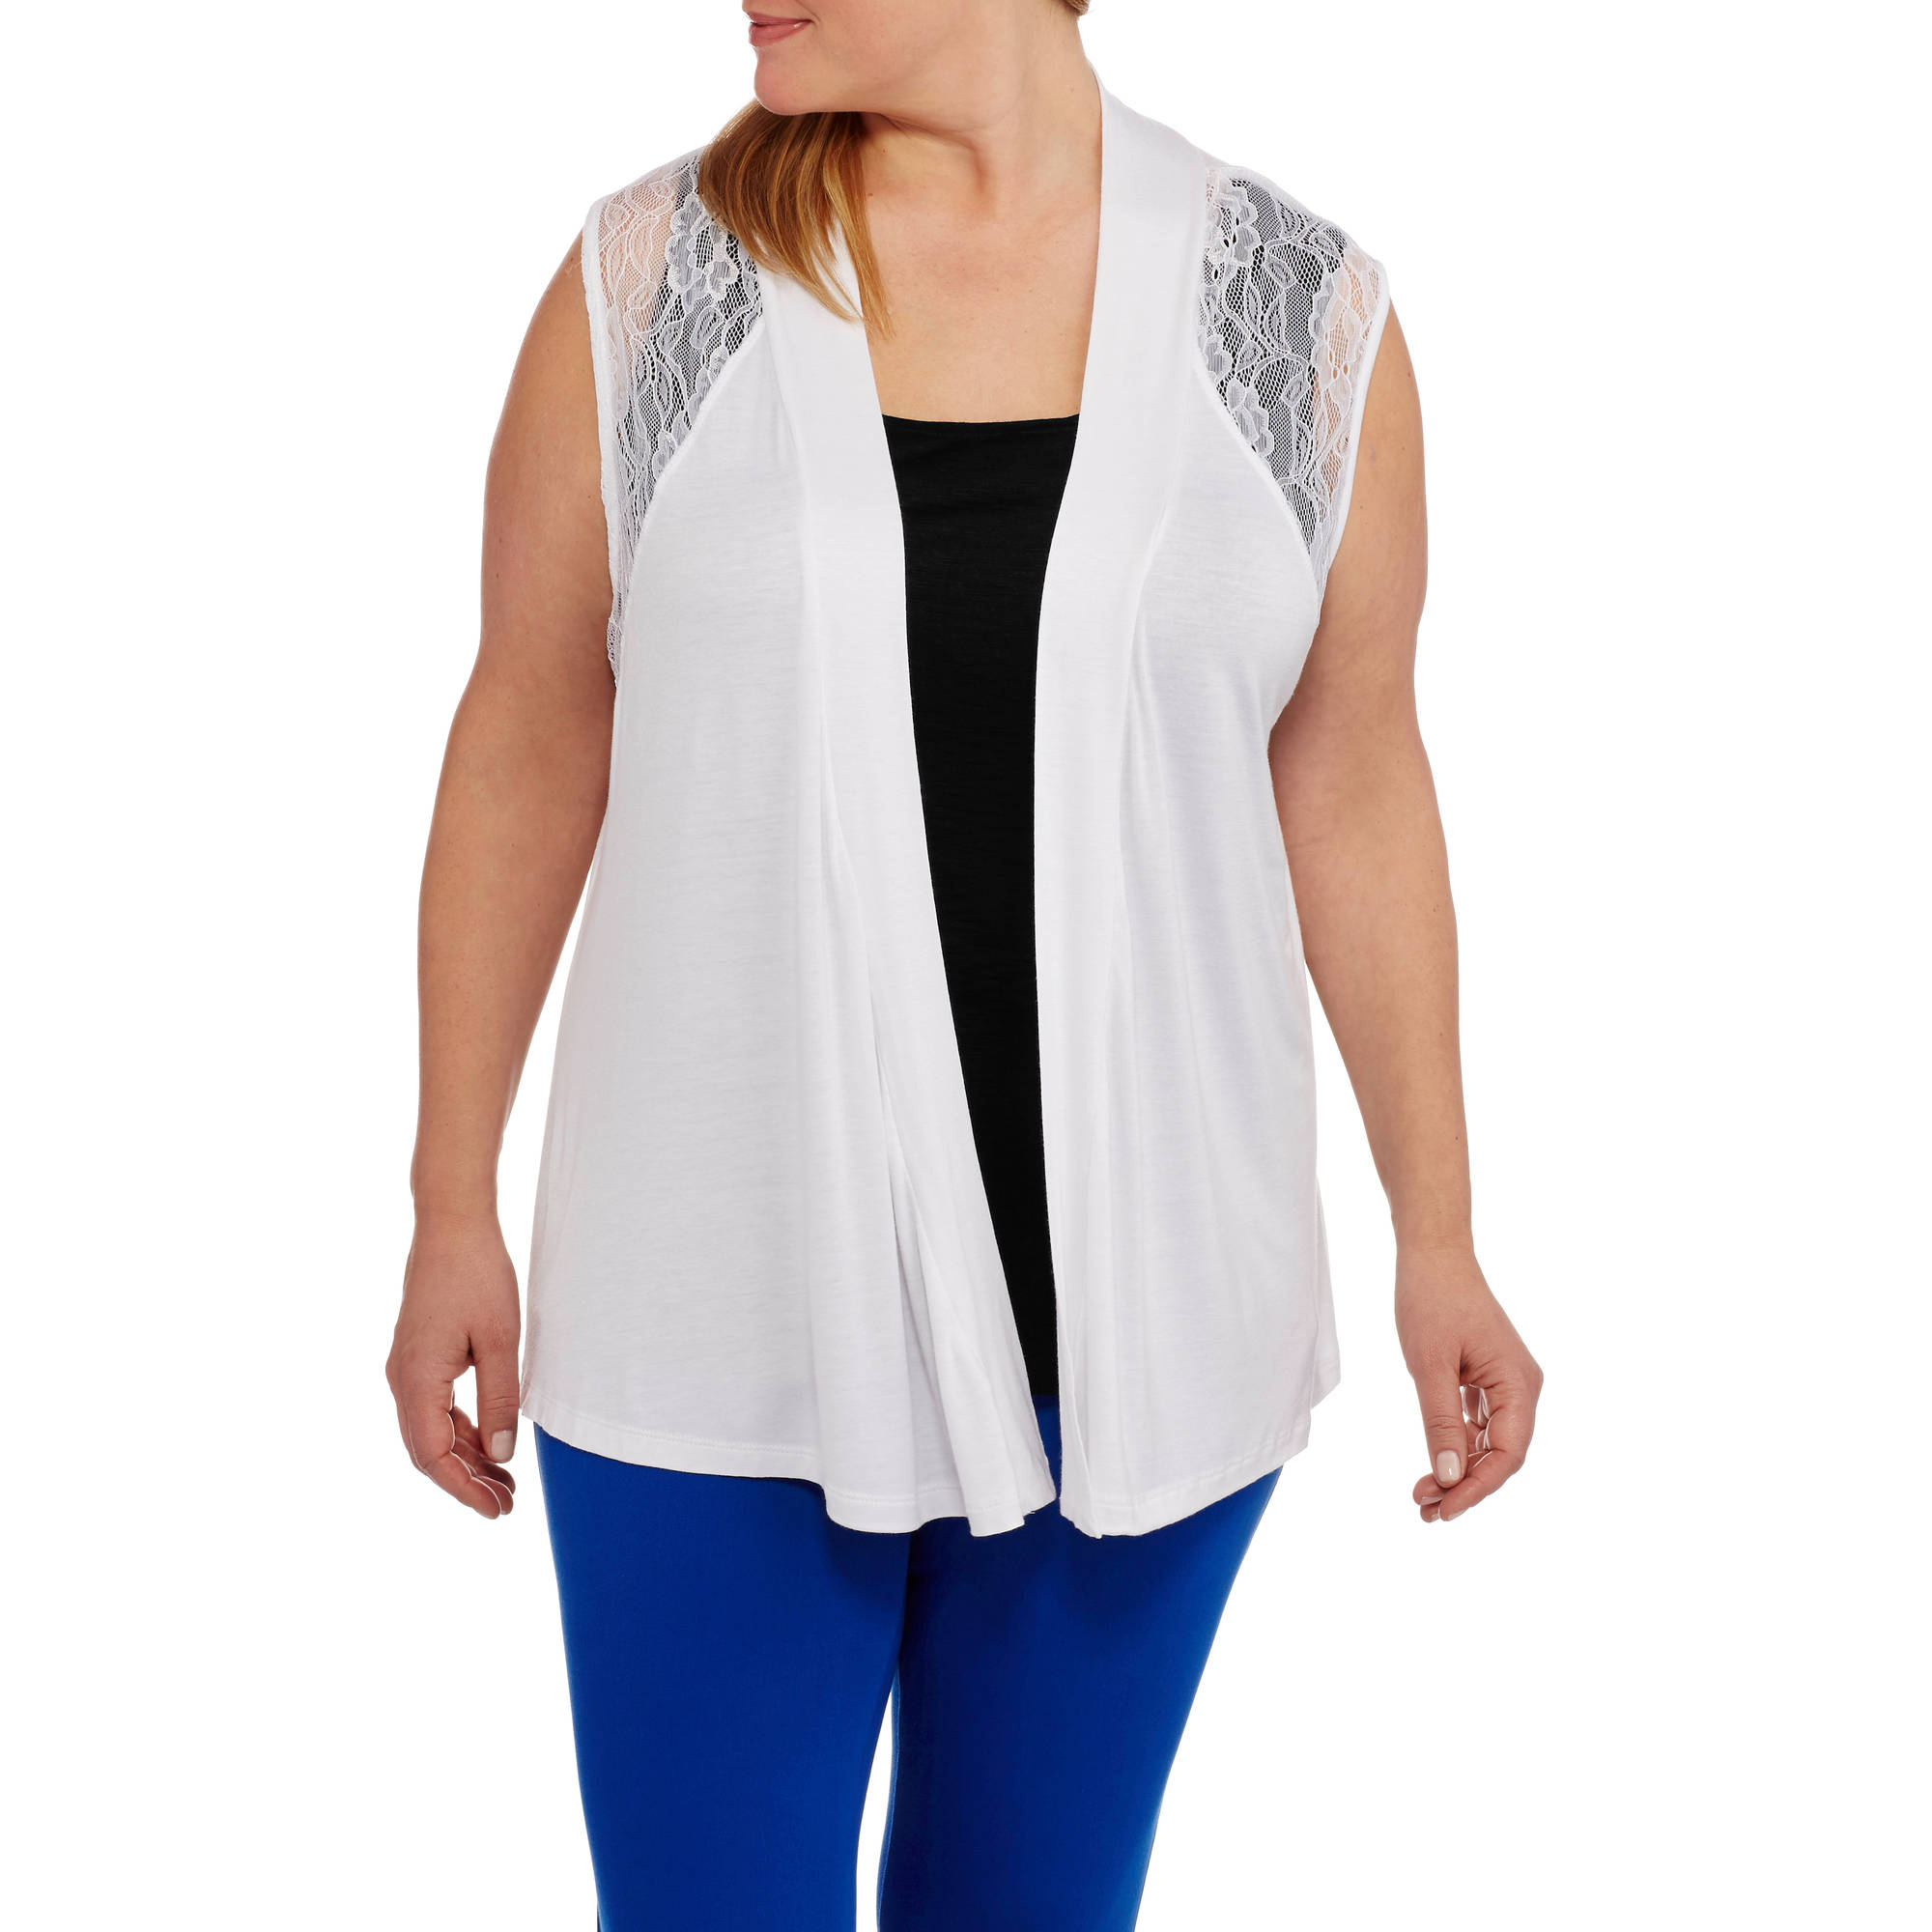 Extra Touch Women's Plus Sleeveless Vest with Lace Panel Sweater